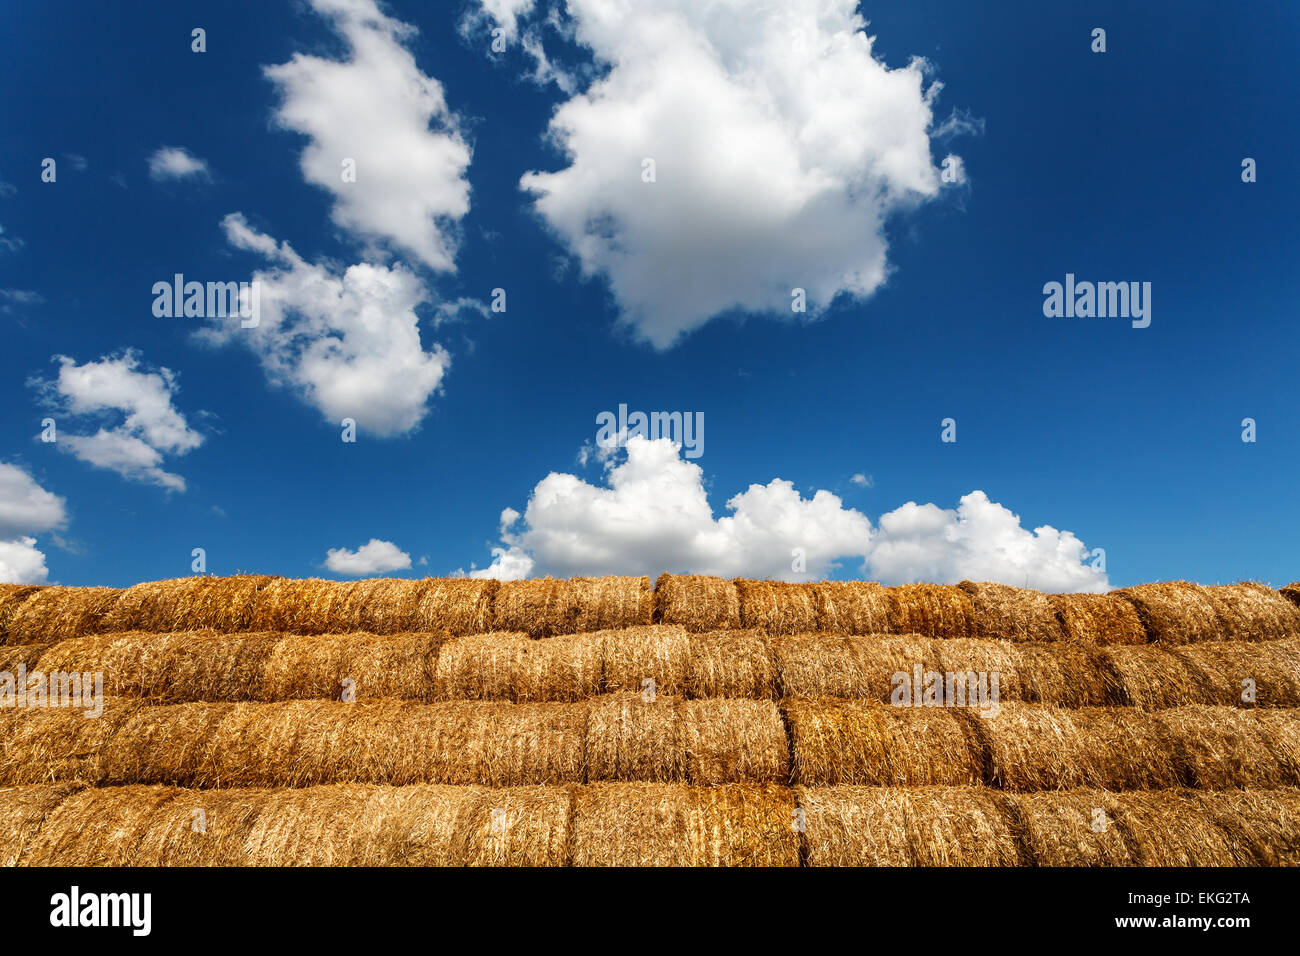 Bales of straw under blue cloudy sky - Stock Image